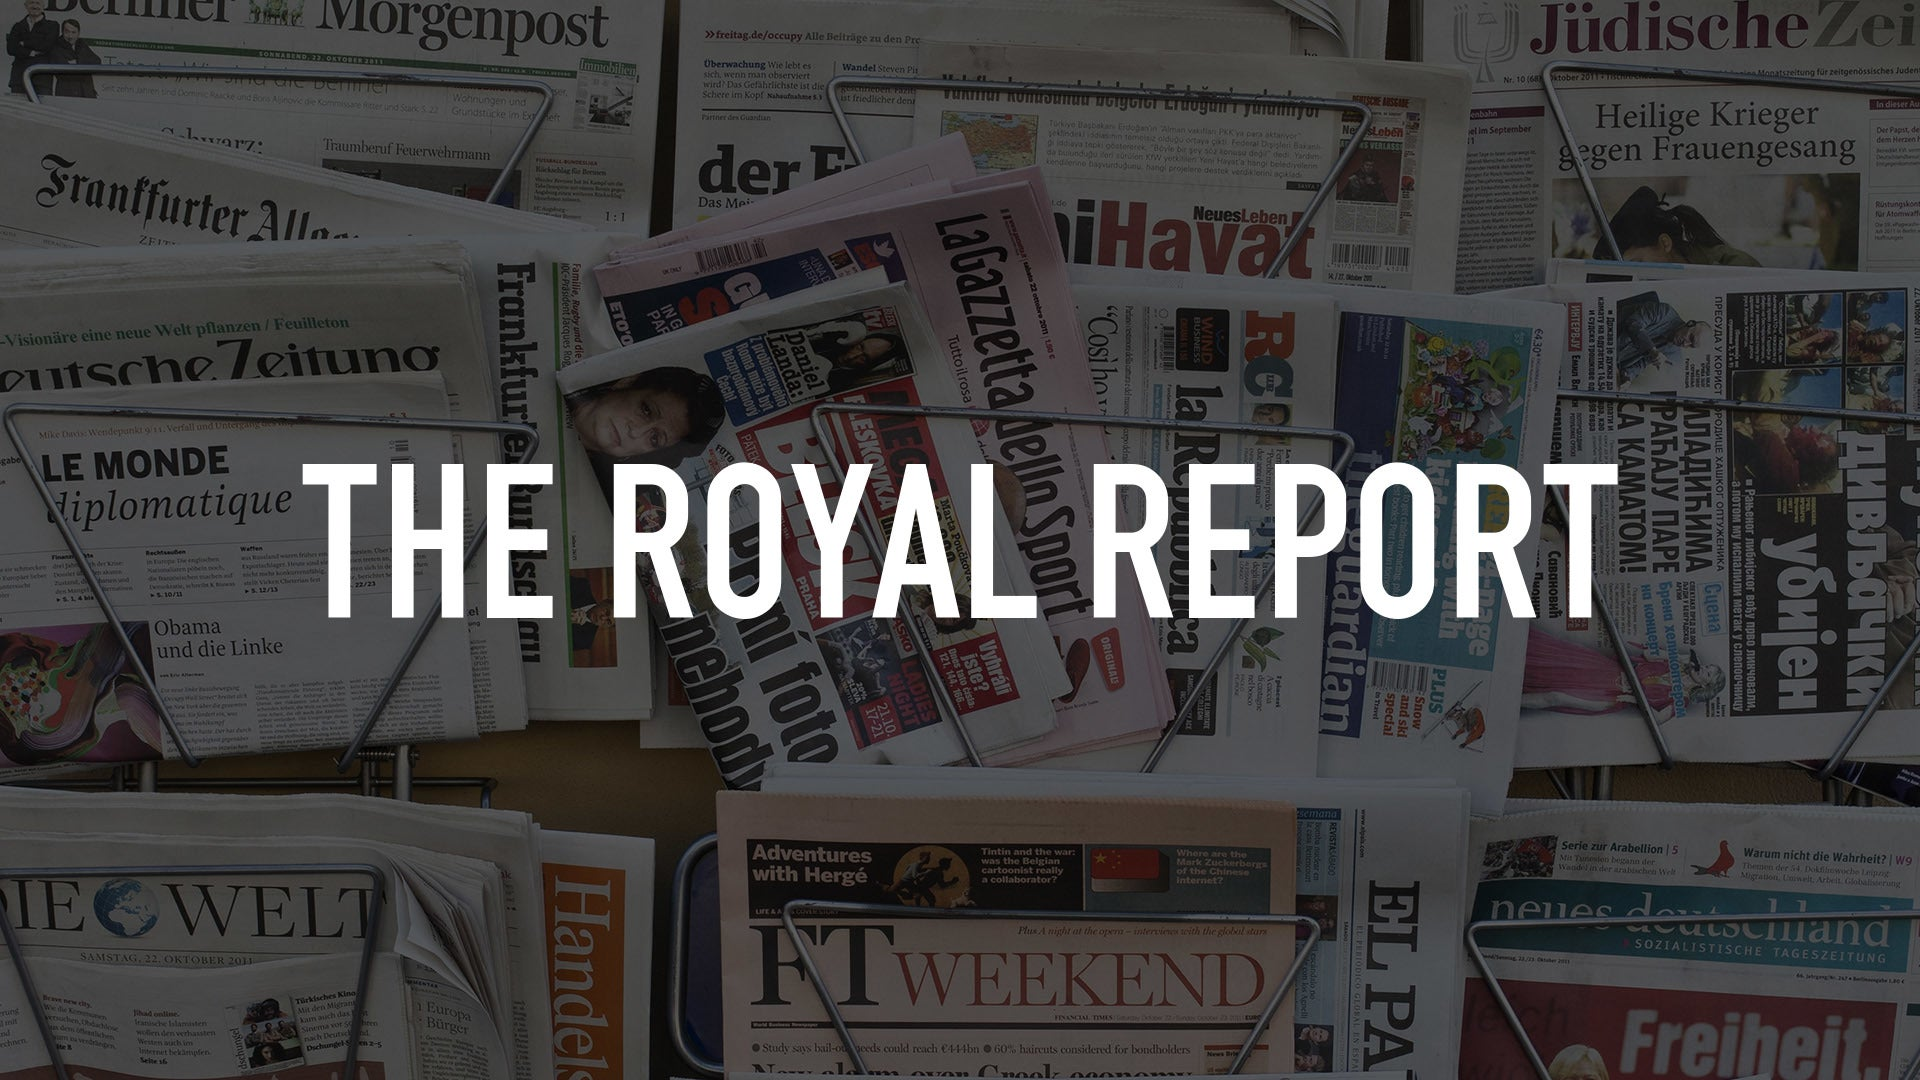 The Royal Report